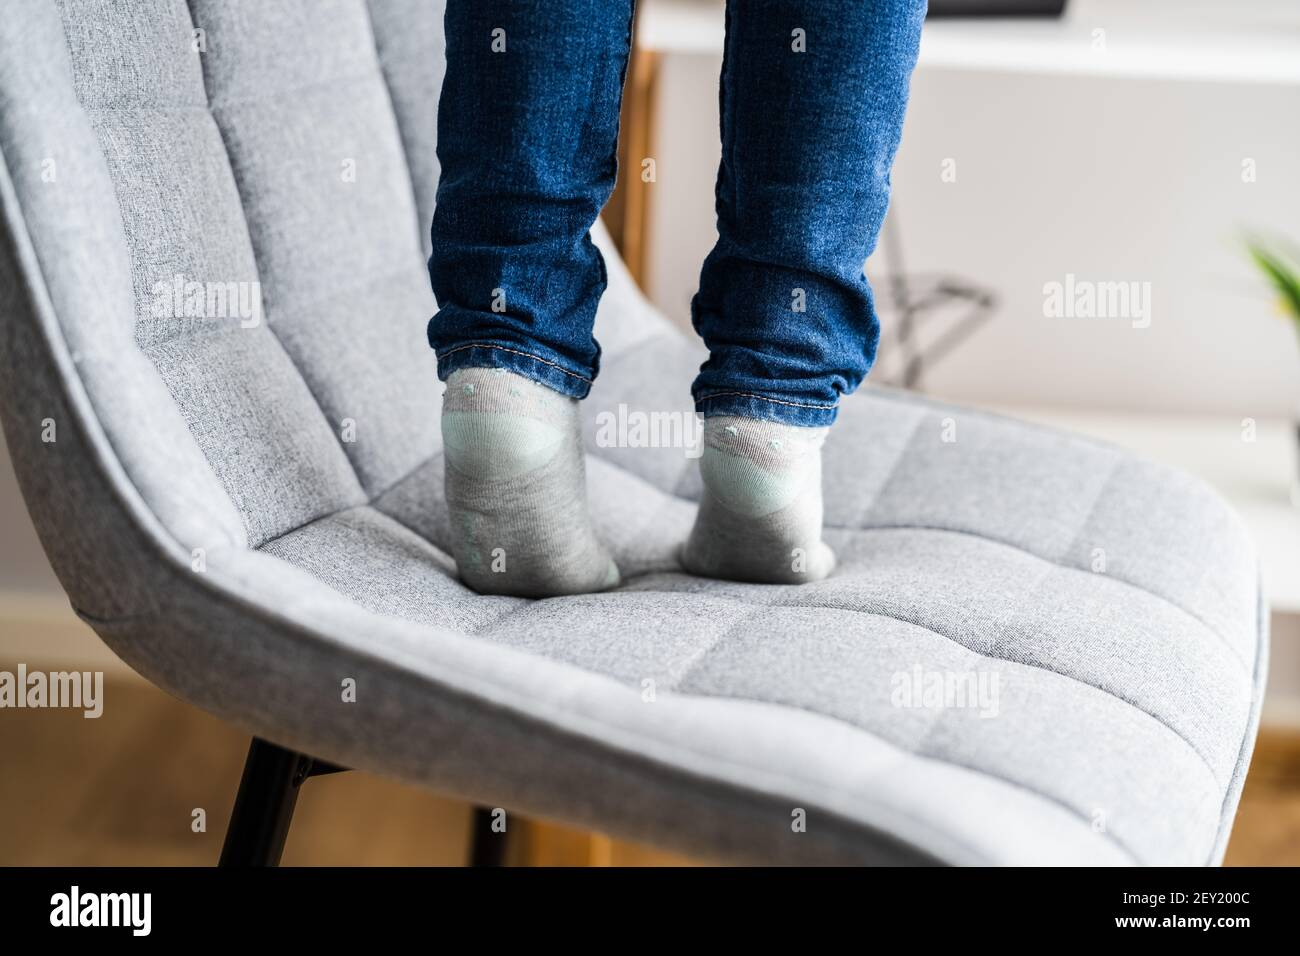 Child Girl Climbing Furniture. Accident Safety In Room Stock Photo